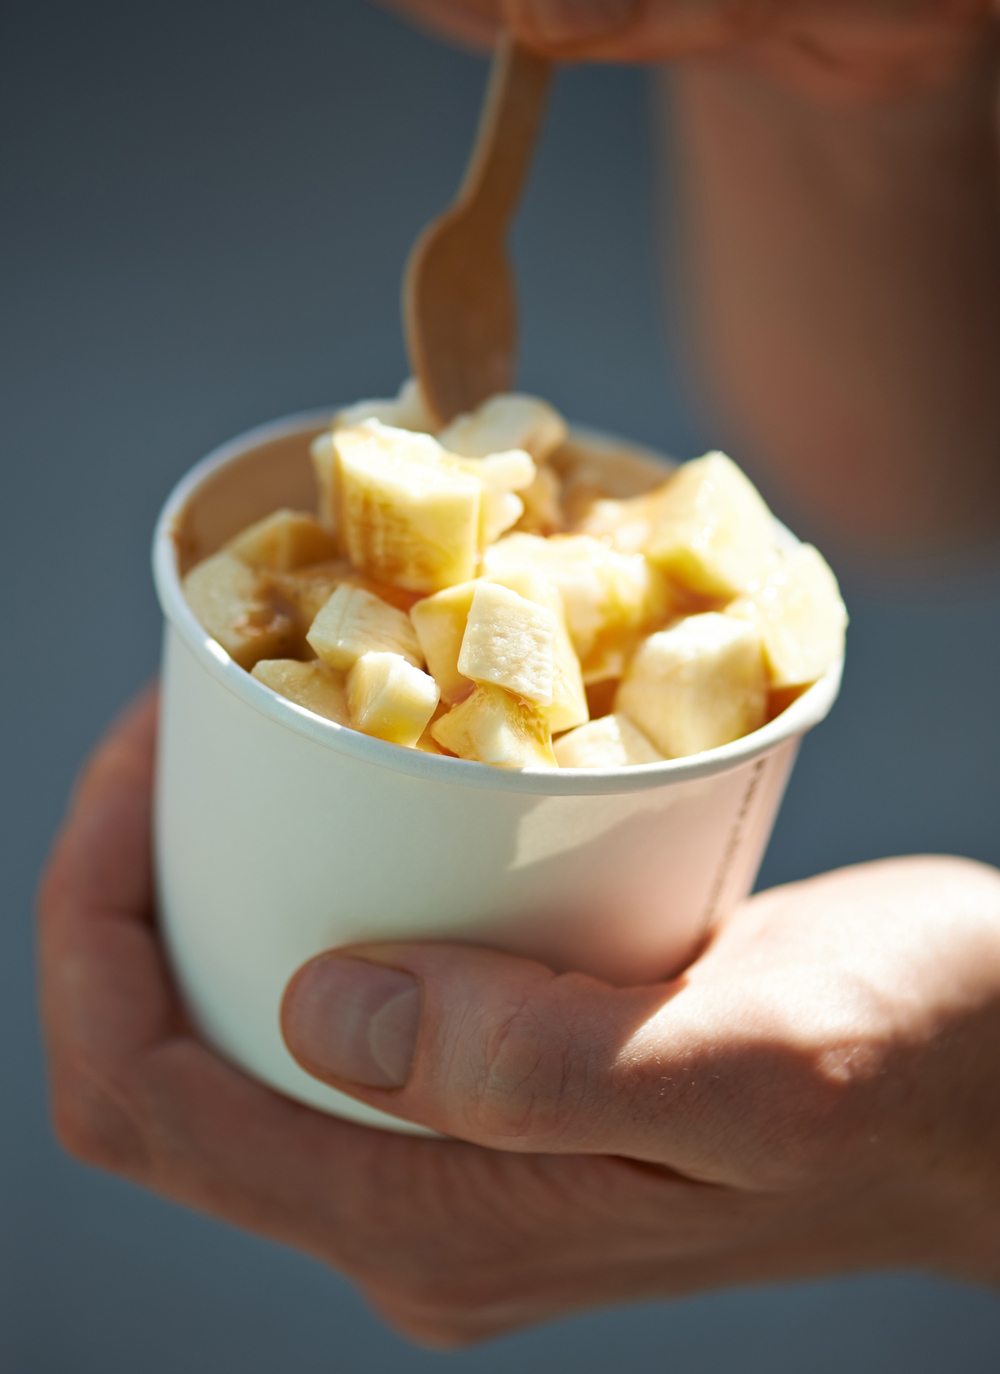 street food photography, frozen yoghurt and bananas